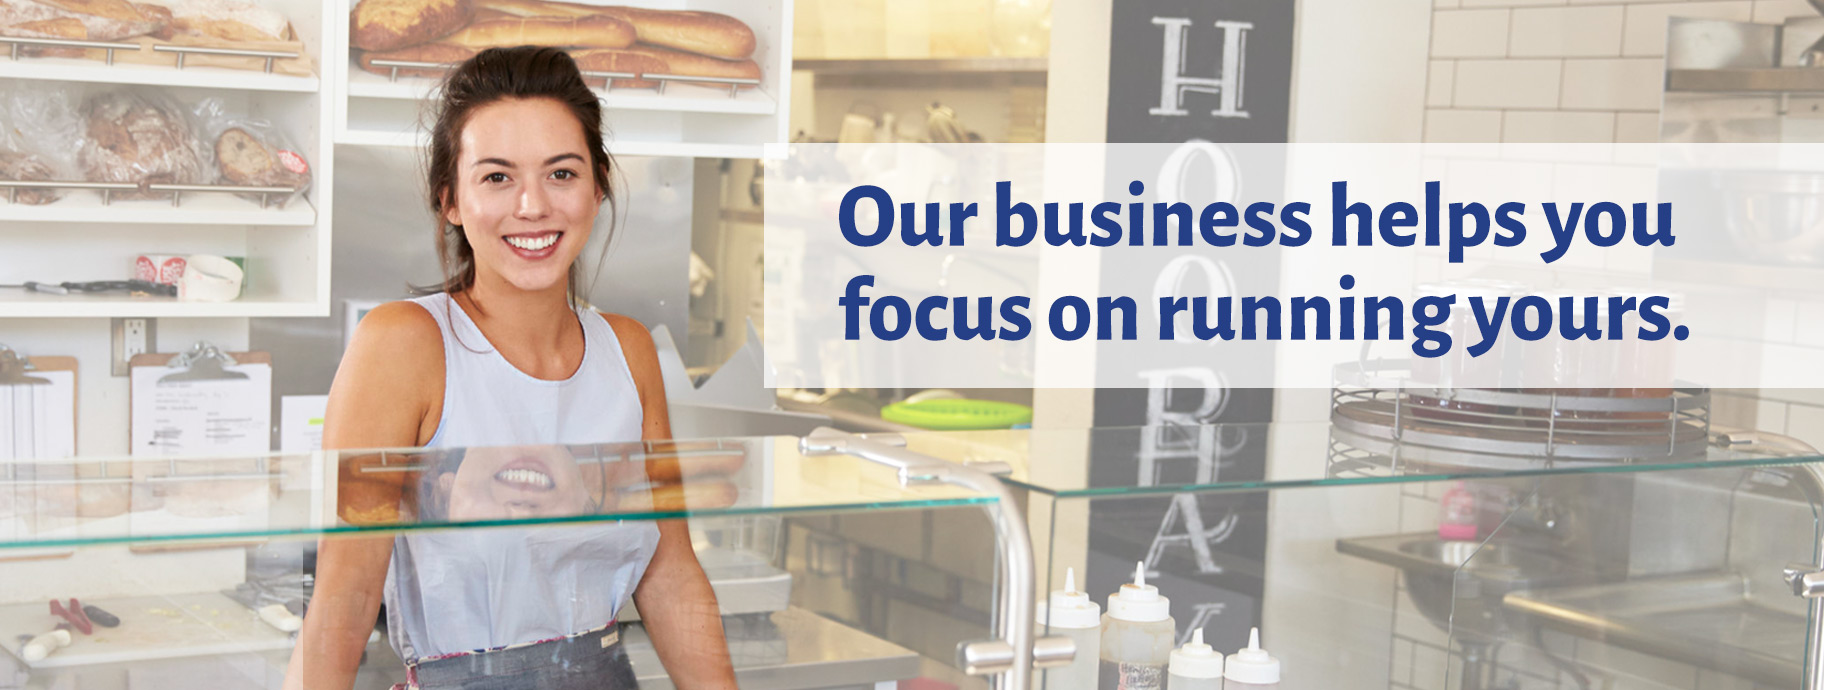 CK Accounting Services helping you focus on your business